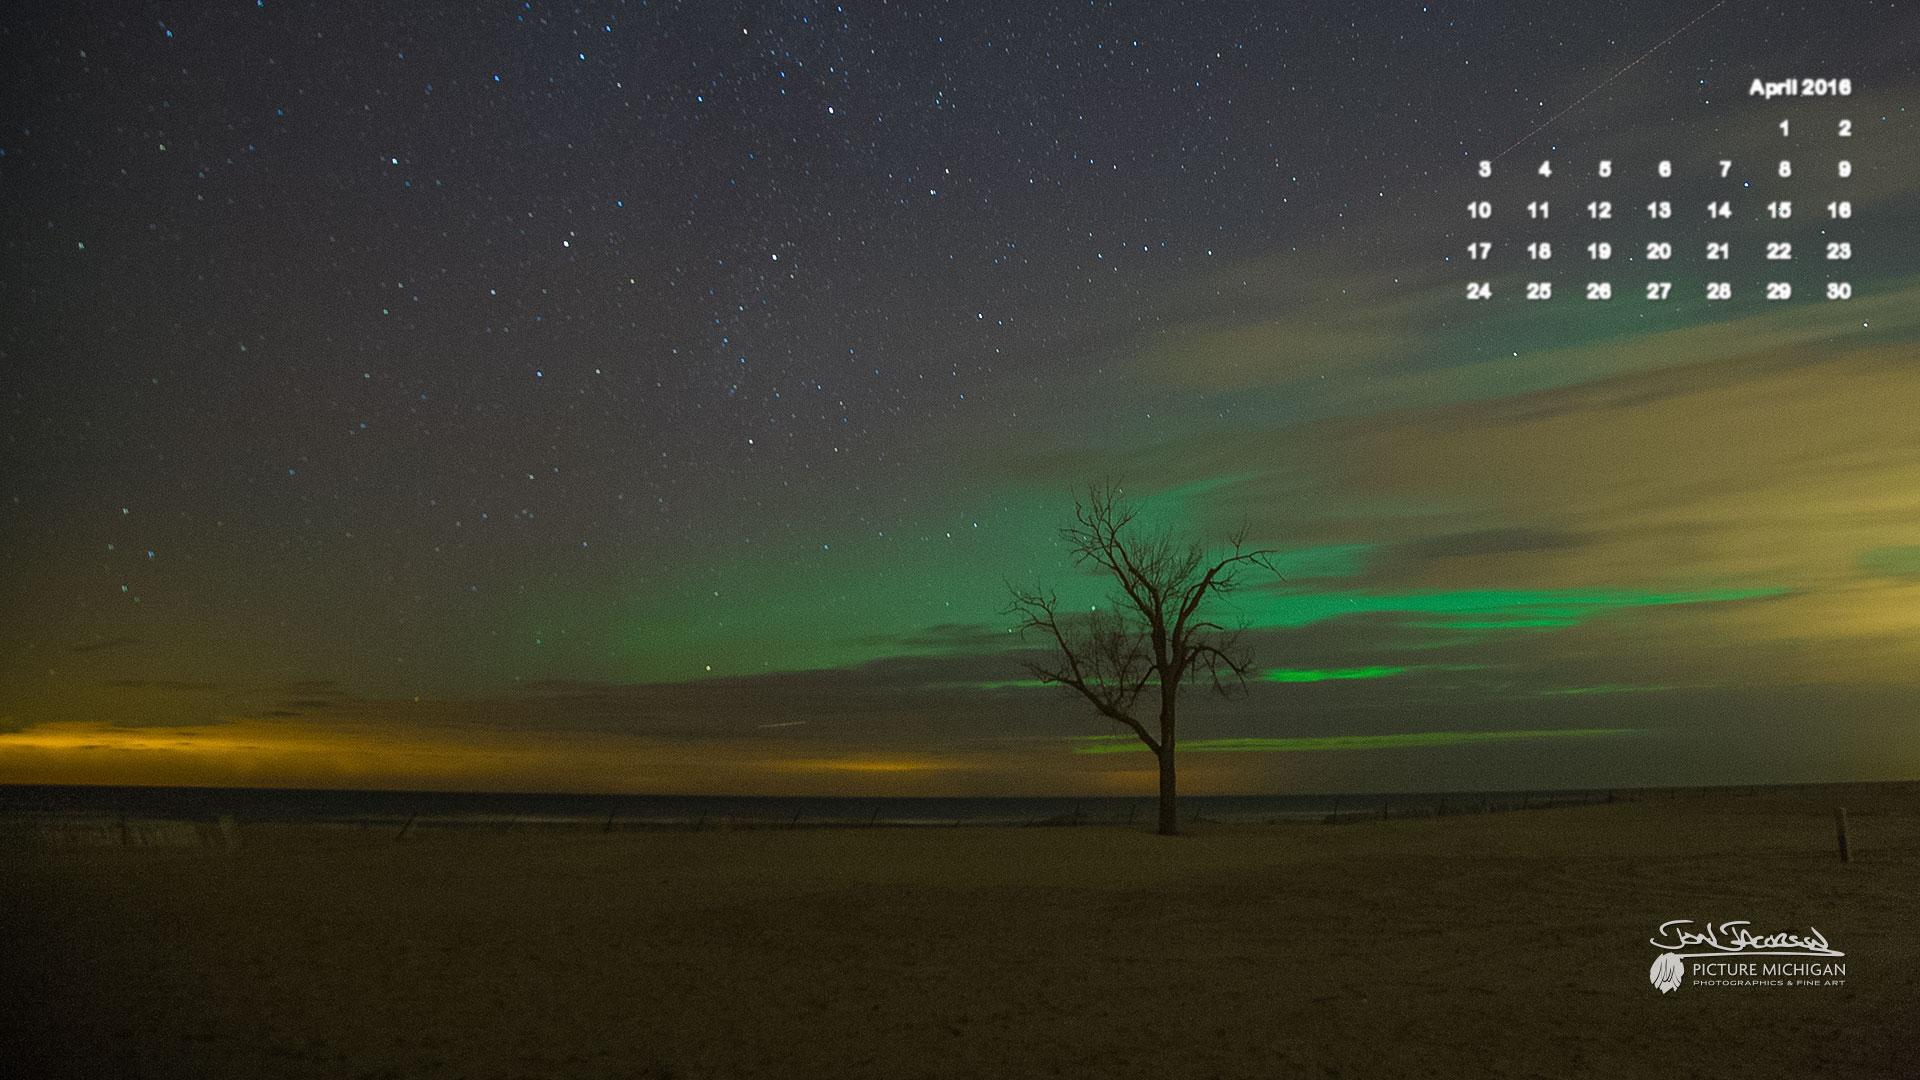 Calendar Background 2016 : April calendar desktop wallpaper northern lights